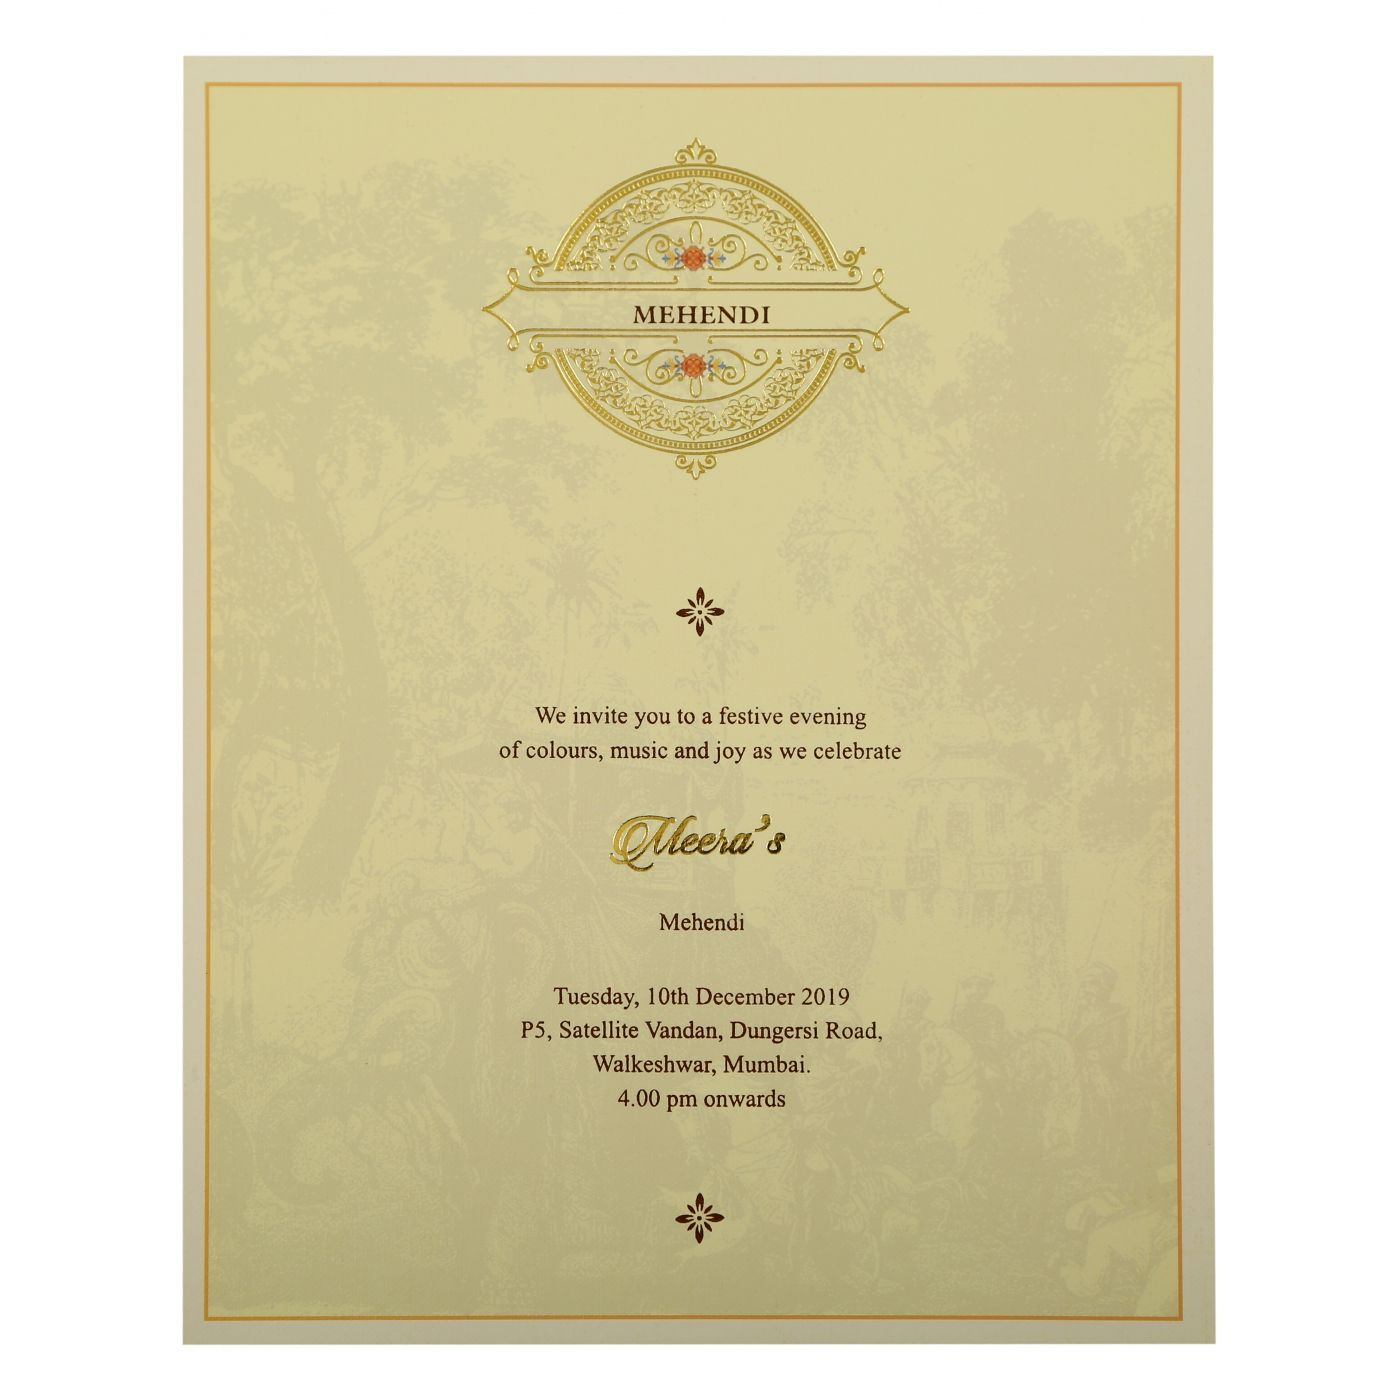 OFF-WHITE SHIMMERY PEACOCK THEMED - FOIL STAMPED WEDDING INVITATION : CS-1866 - IndianWeddingCards